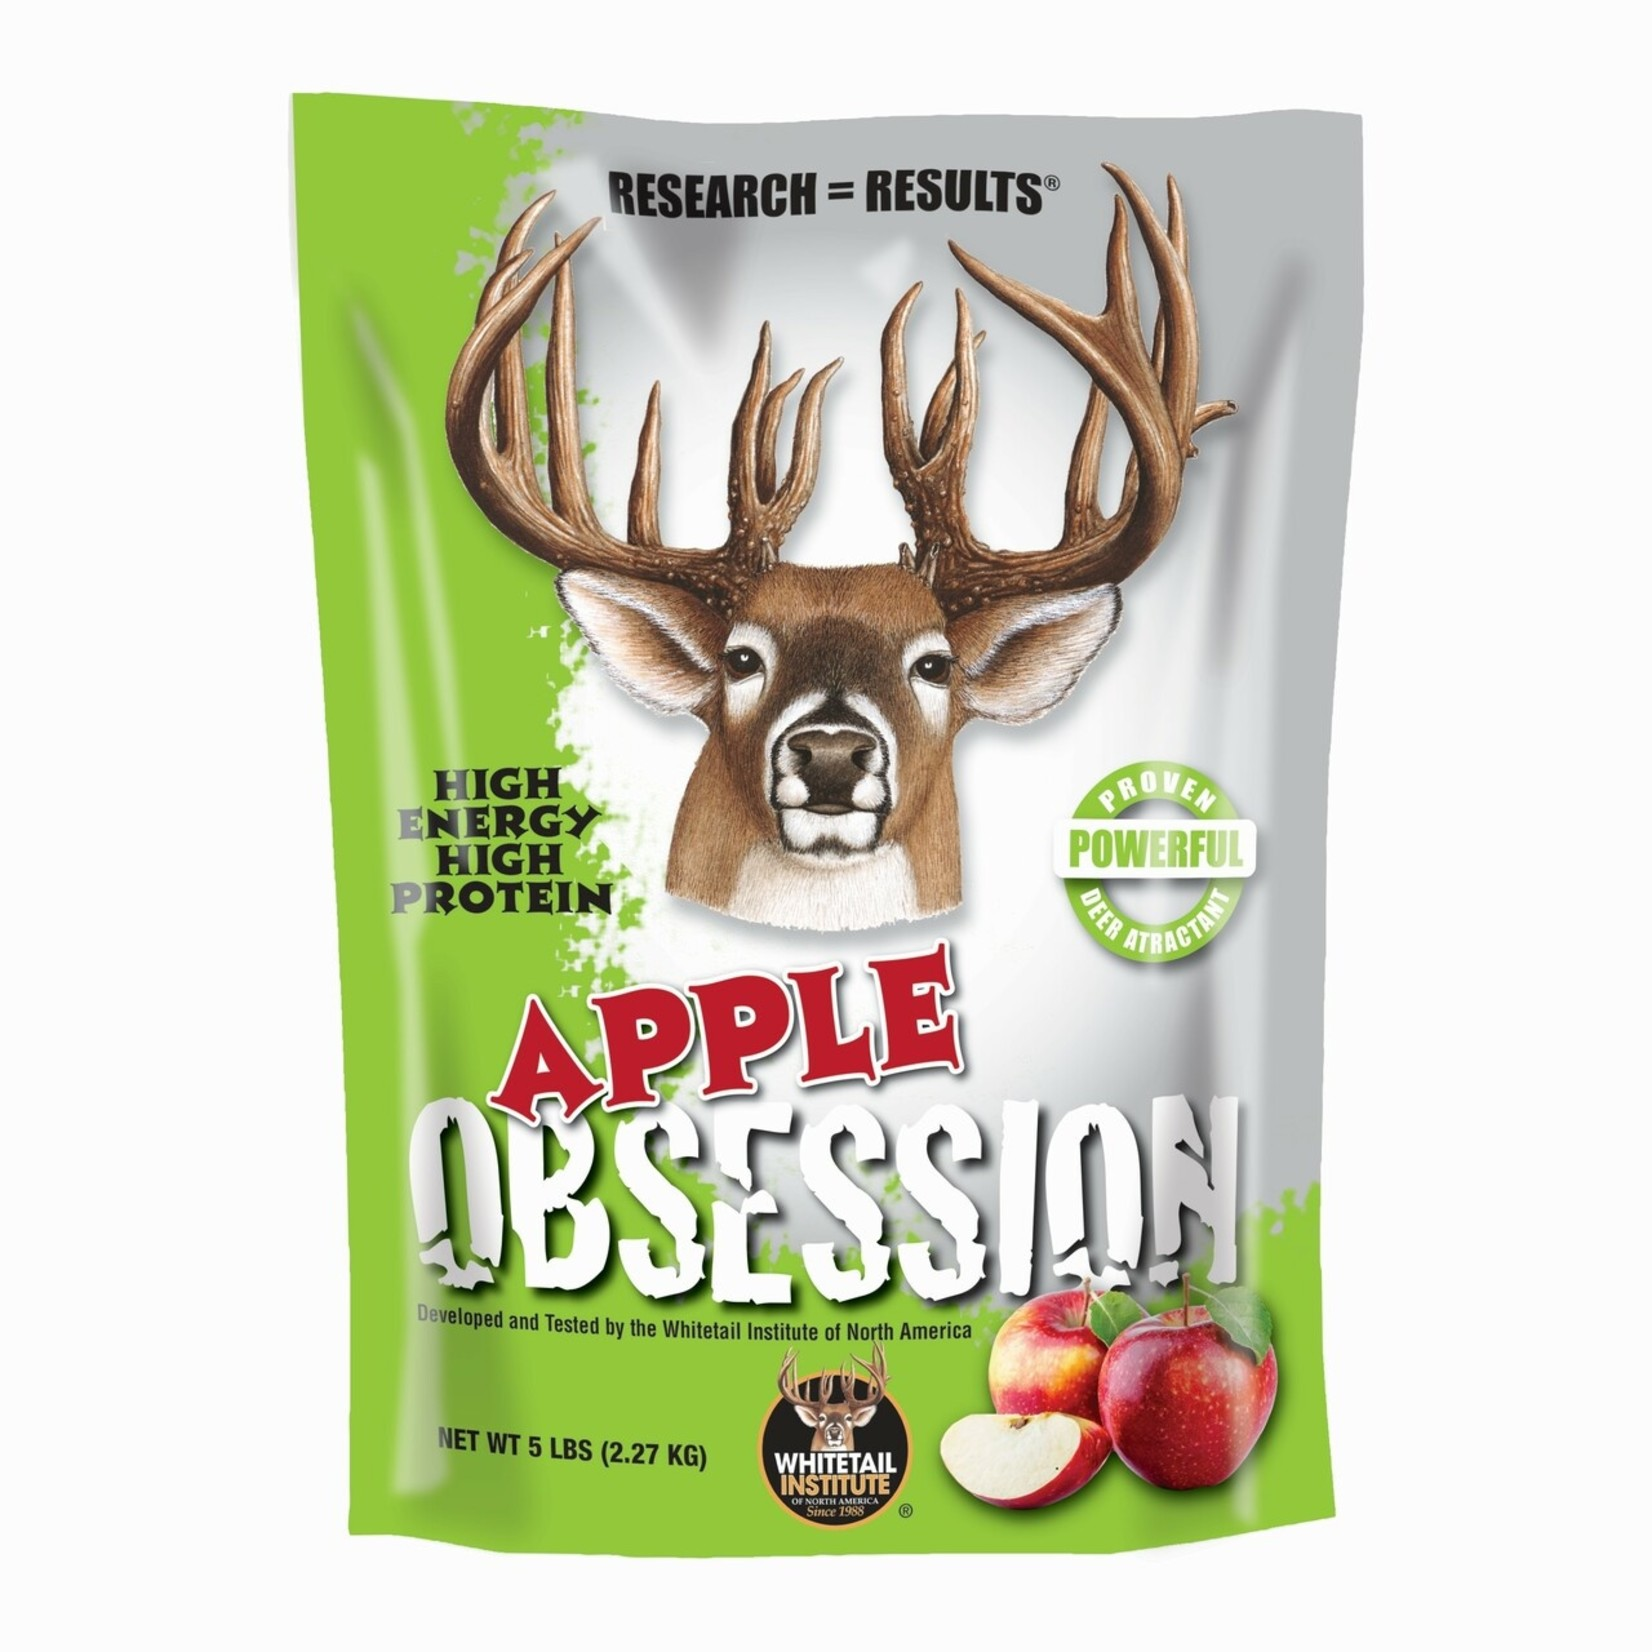 Imperial Whitetail Institute Apple Obsession 5lbs/2.27 kg